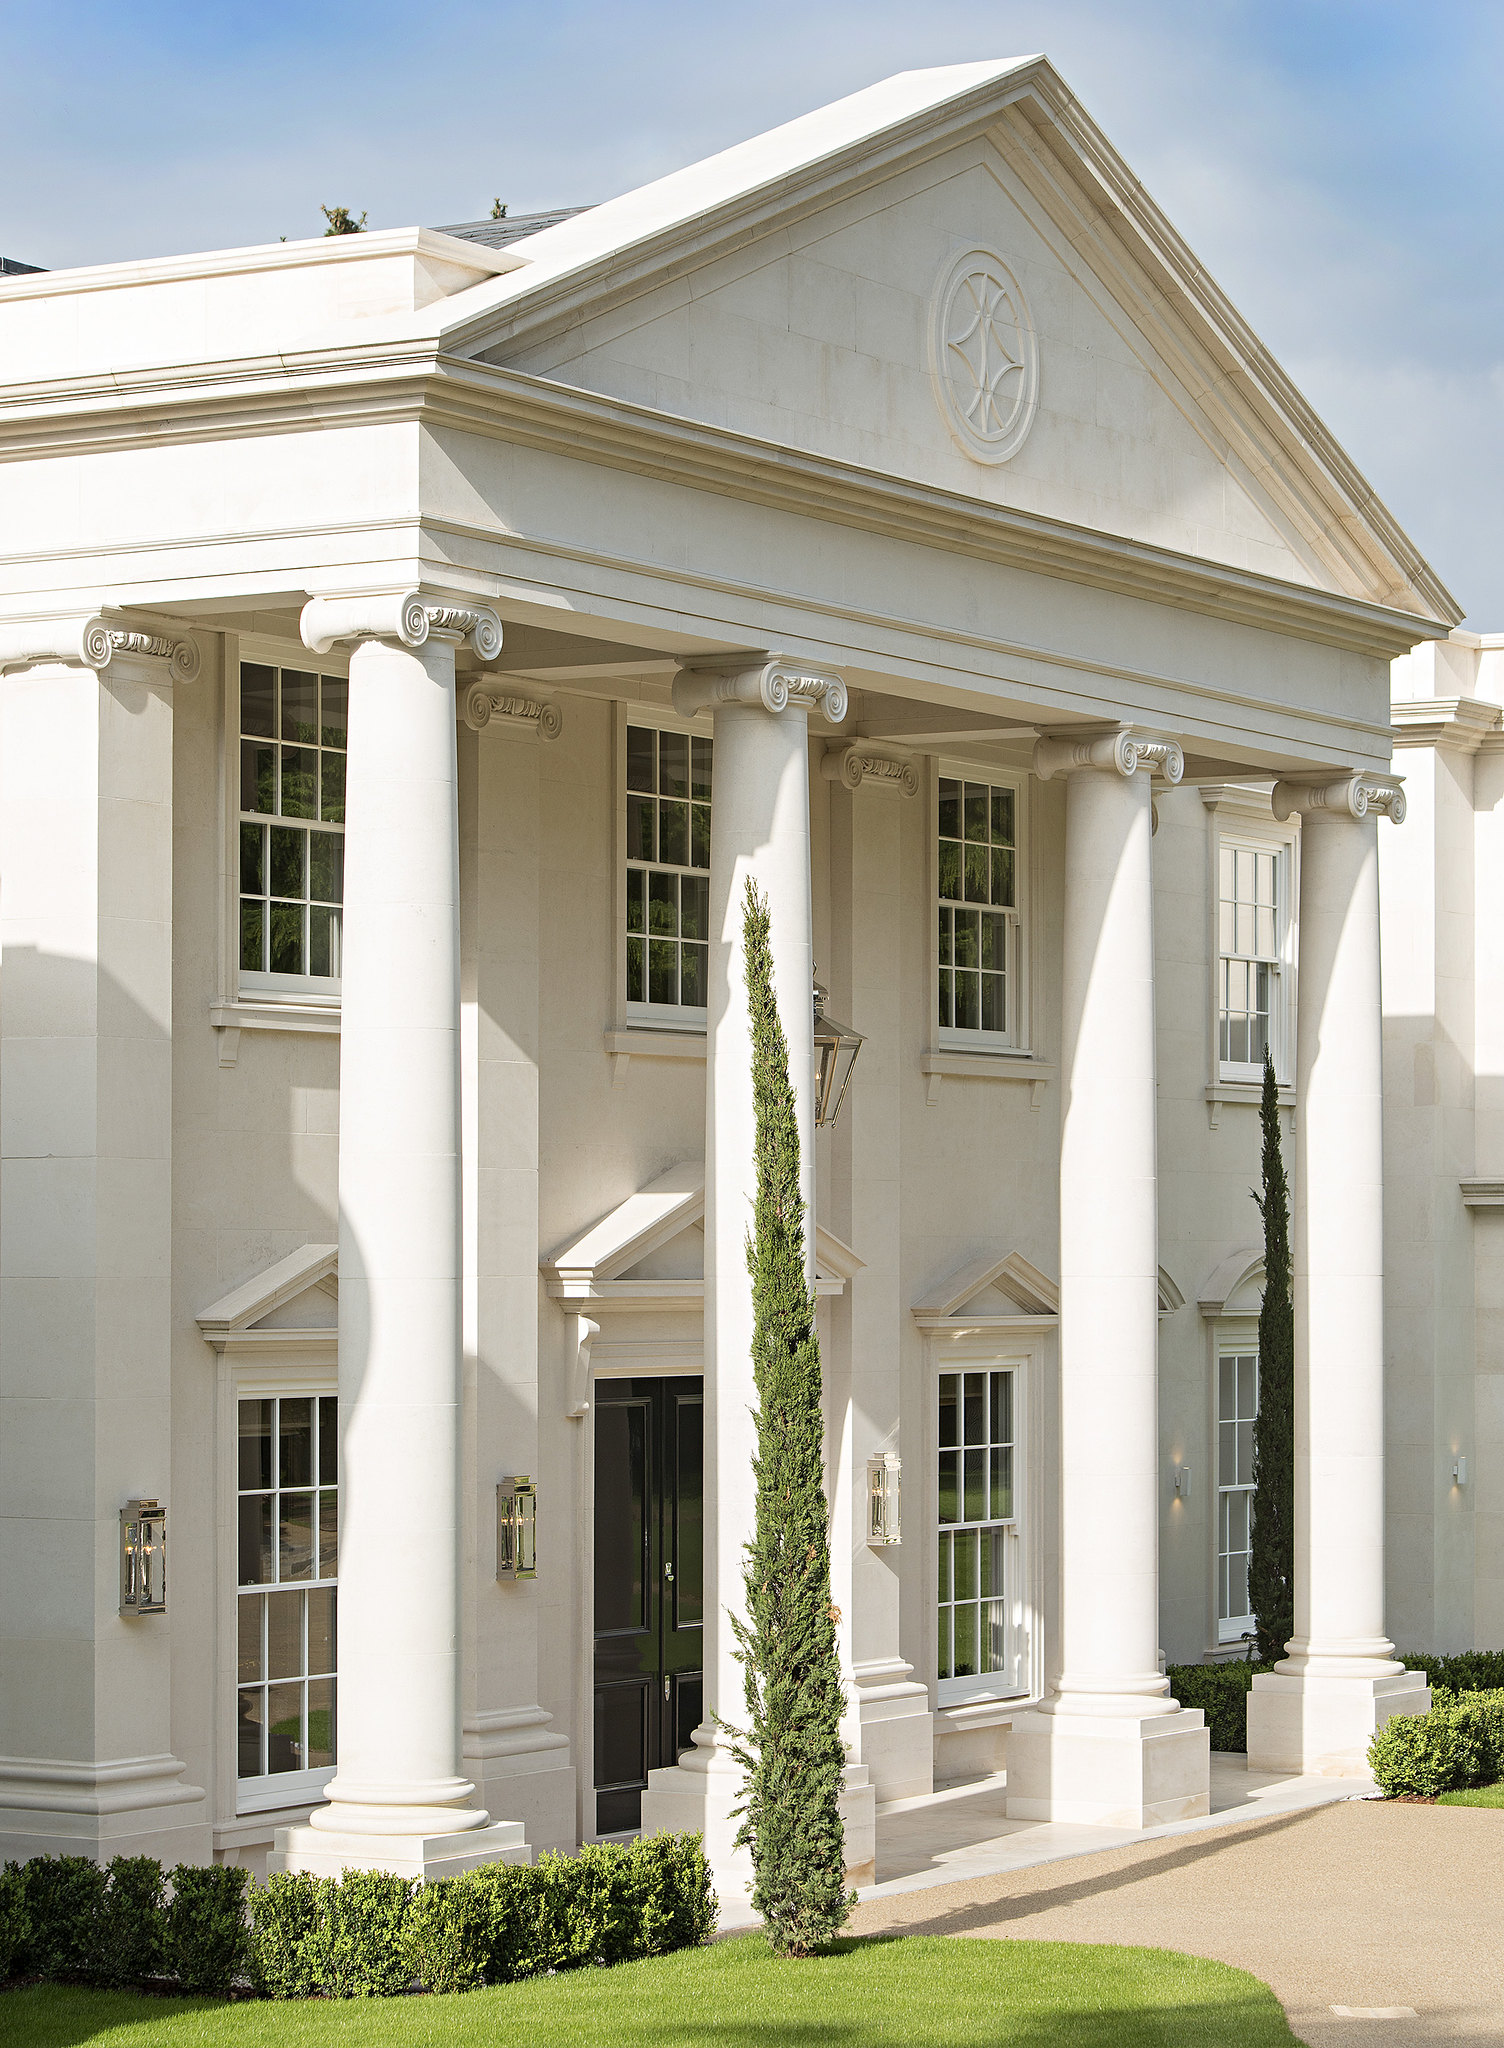 dawn-hill-wentworth-estate-our-work-private-clients-ascot-design-view2.jpg